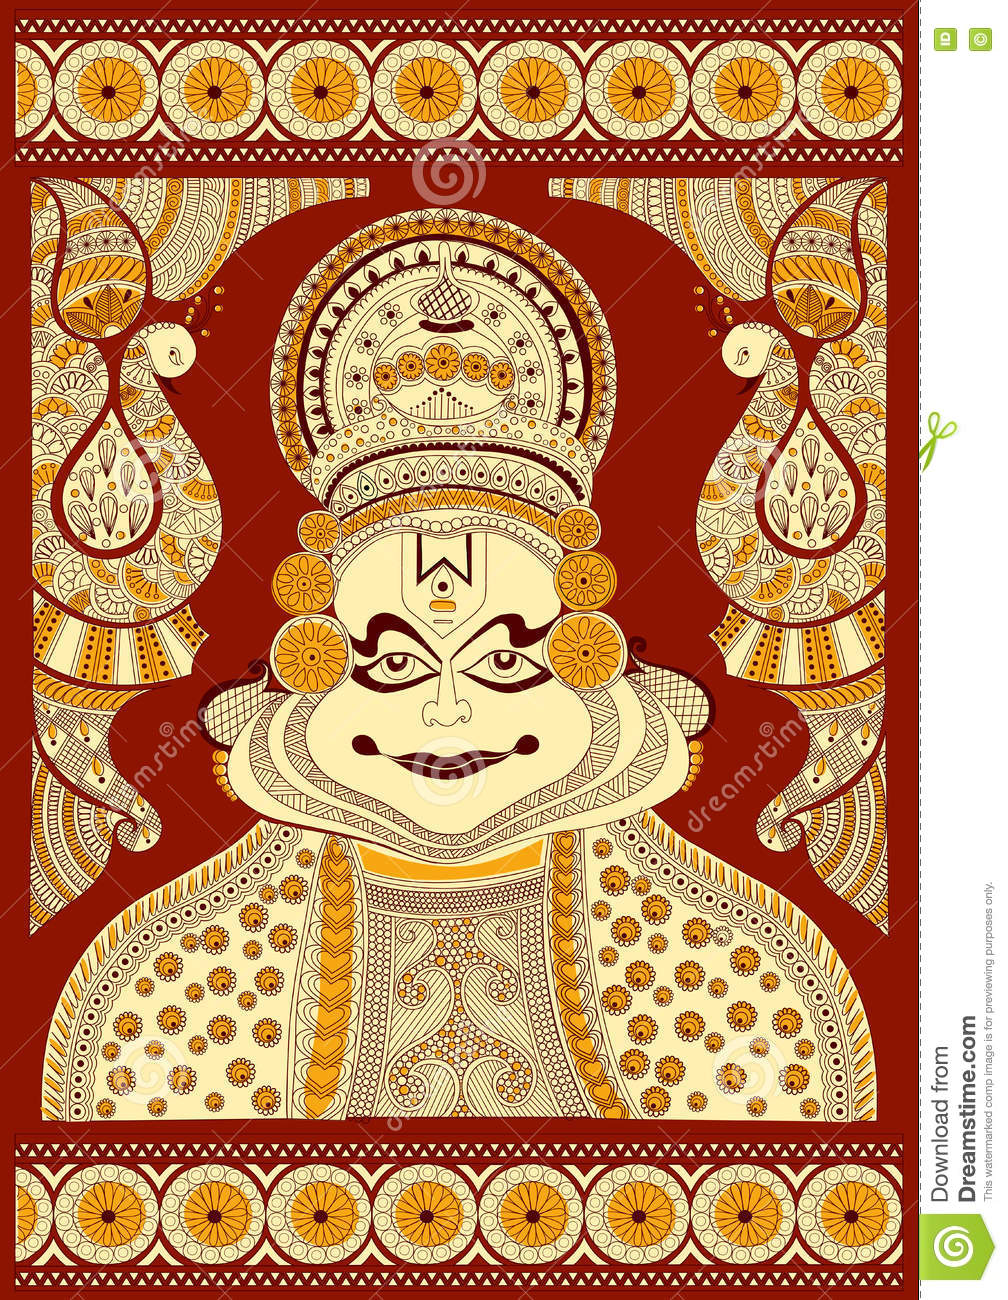 kathakali cartoons pictures illustrations - photo #8